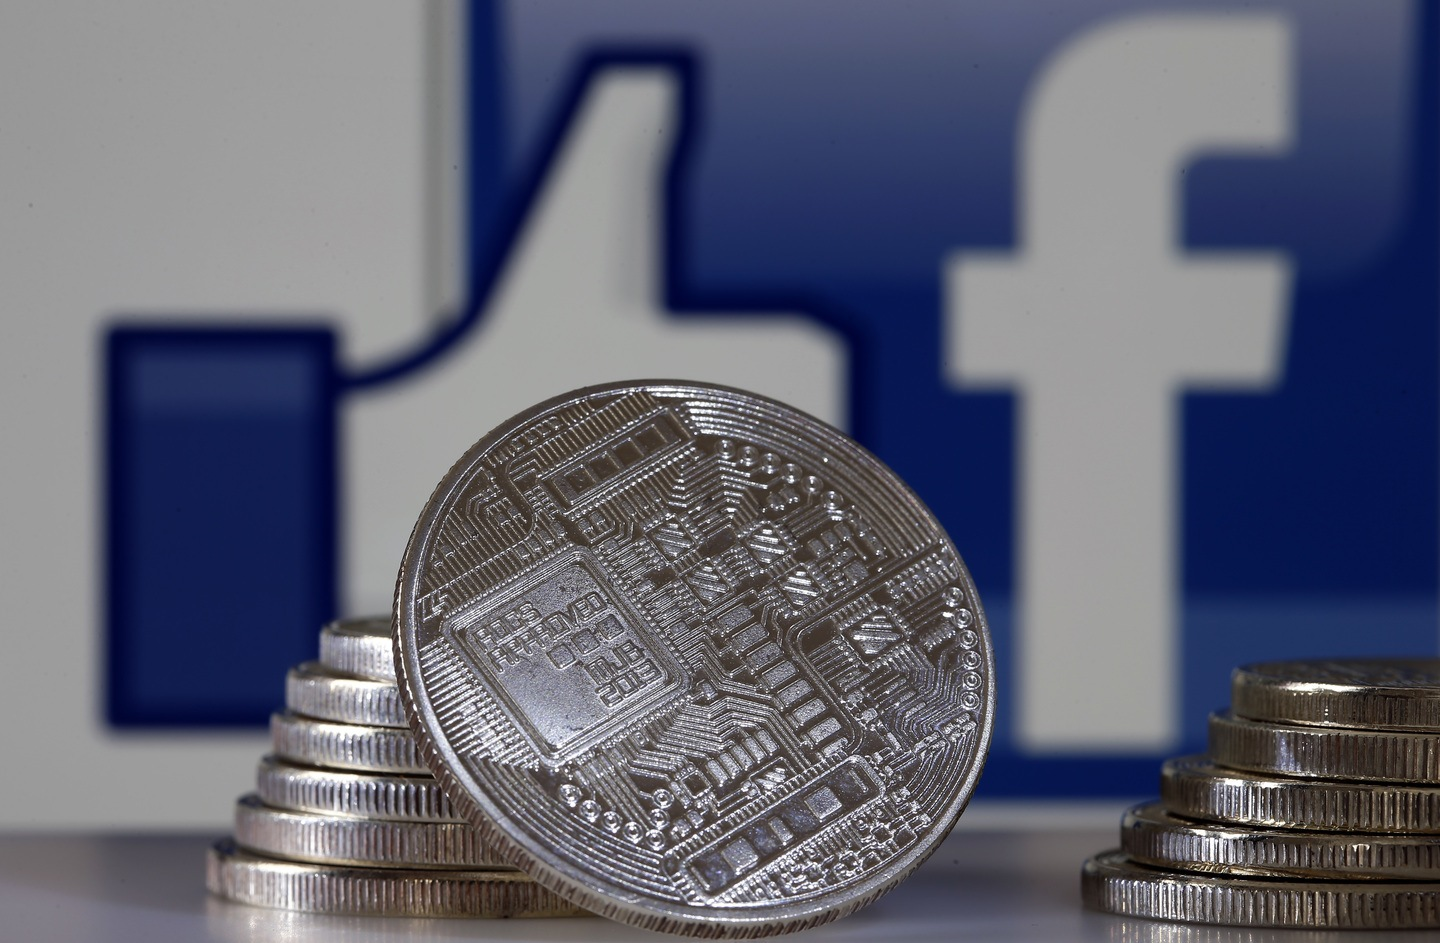 Facebook is becoming a bank with new cryptocurrency Libra. Iconic Facebook and thumbs up icon next to hypothetical bitcoins.